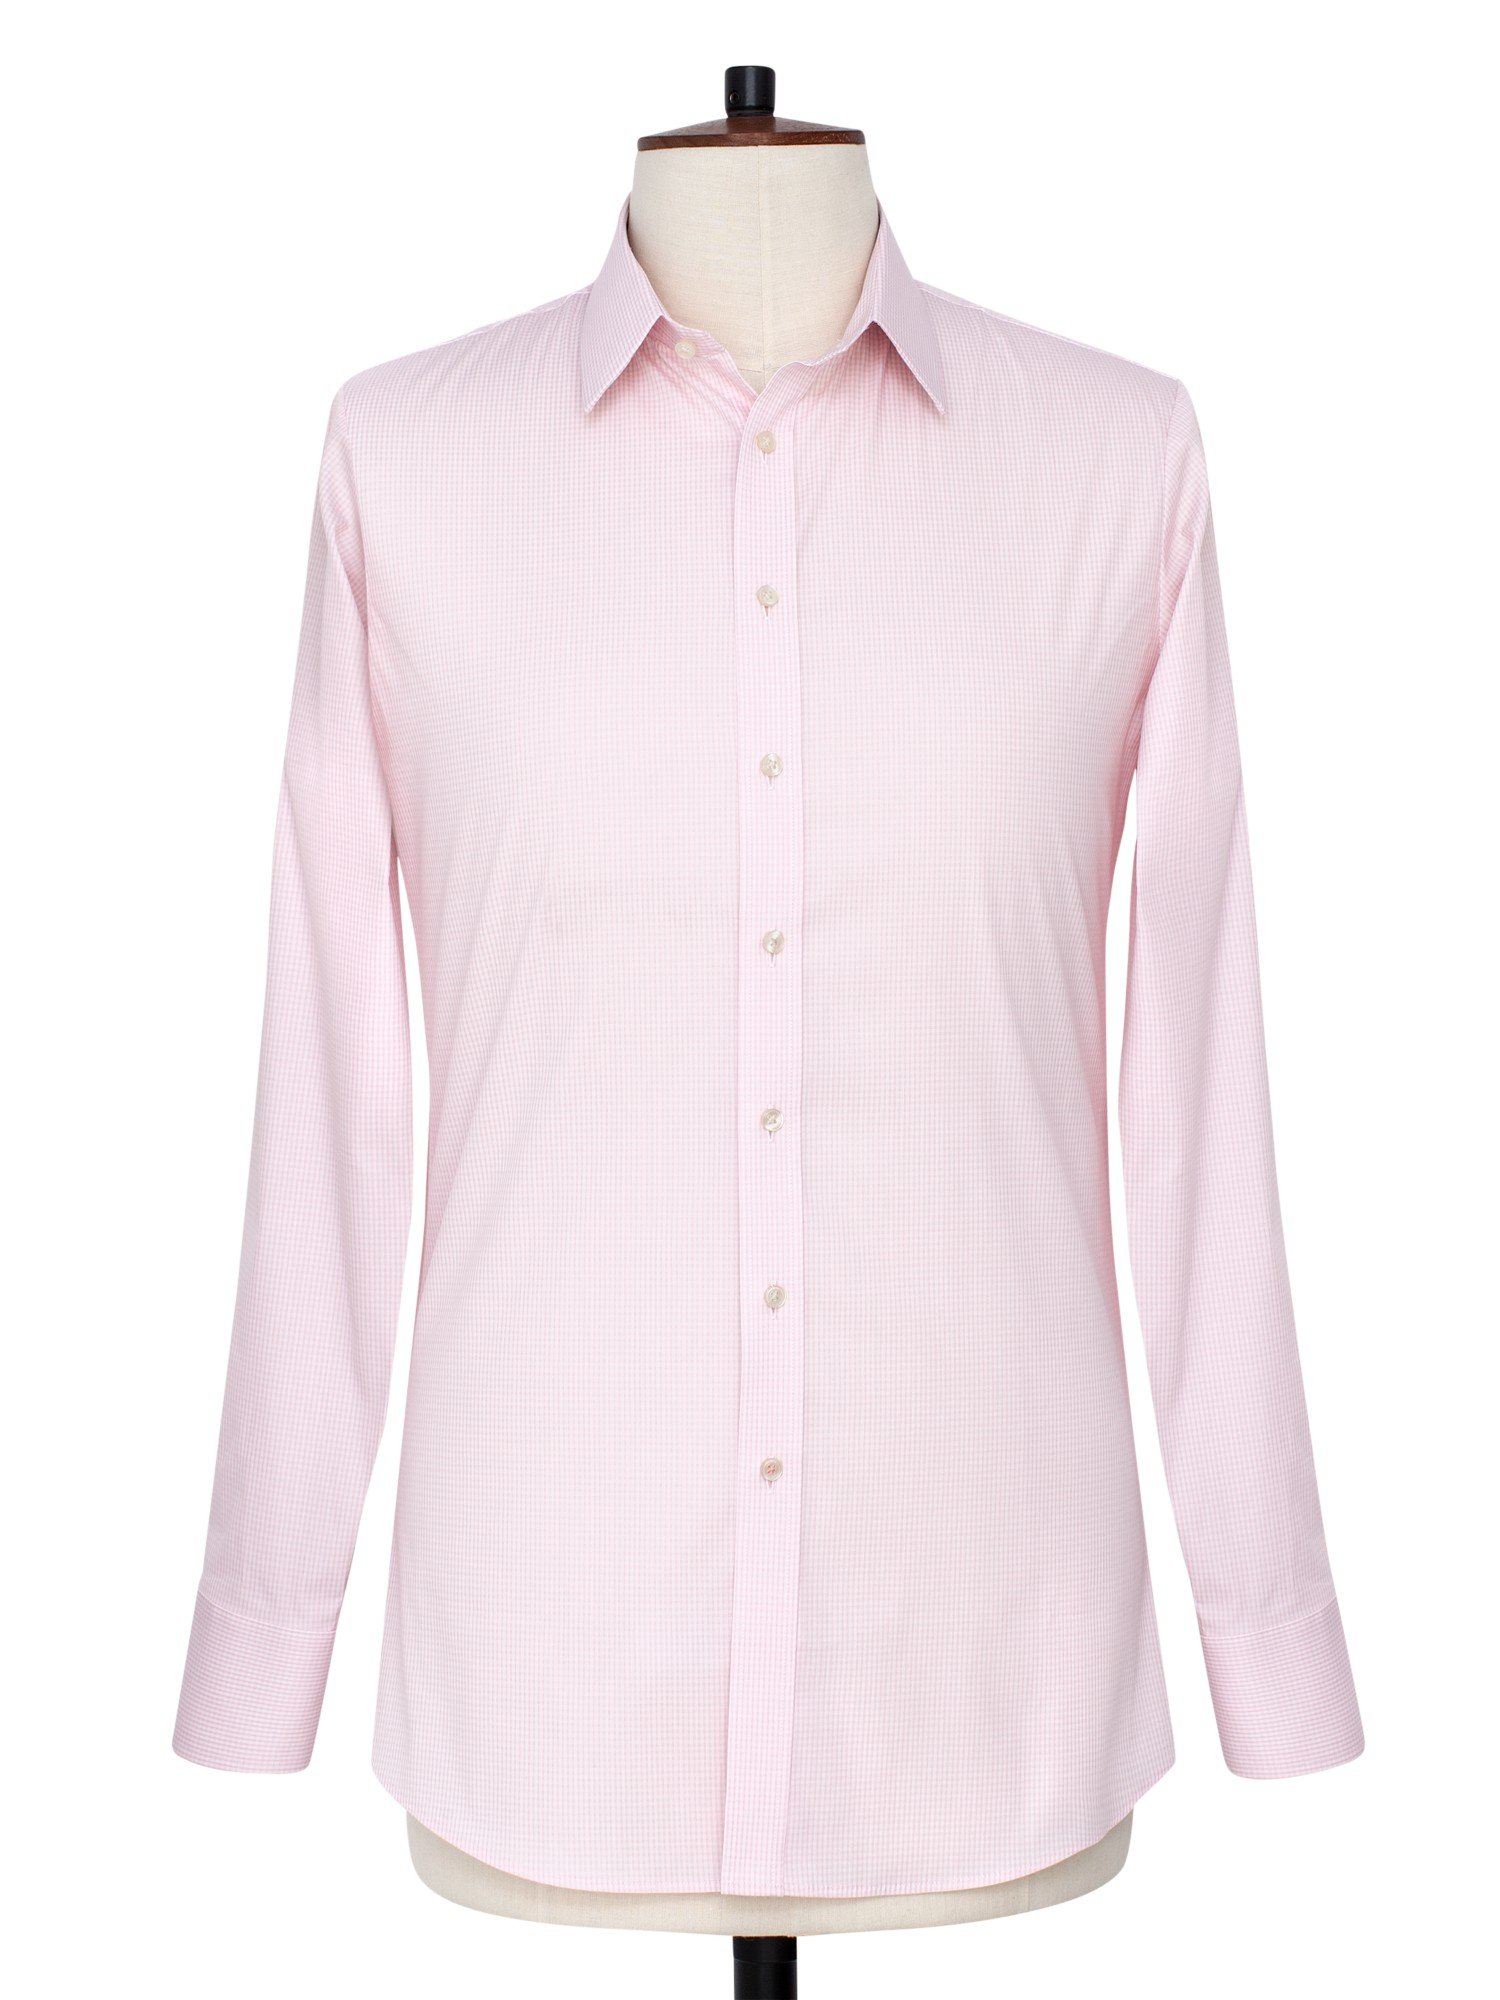 Thomas pink dyment texture super slim fit shirt in pink for Super slim dress shirts